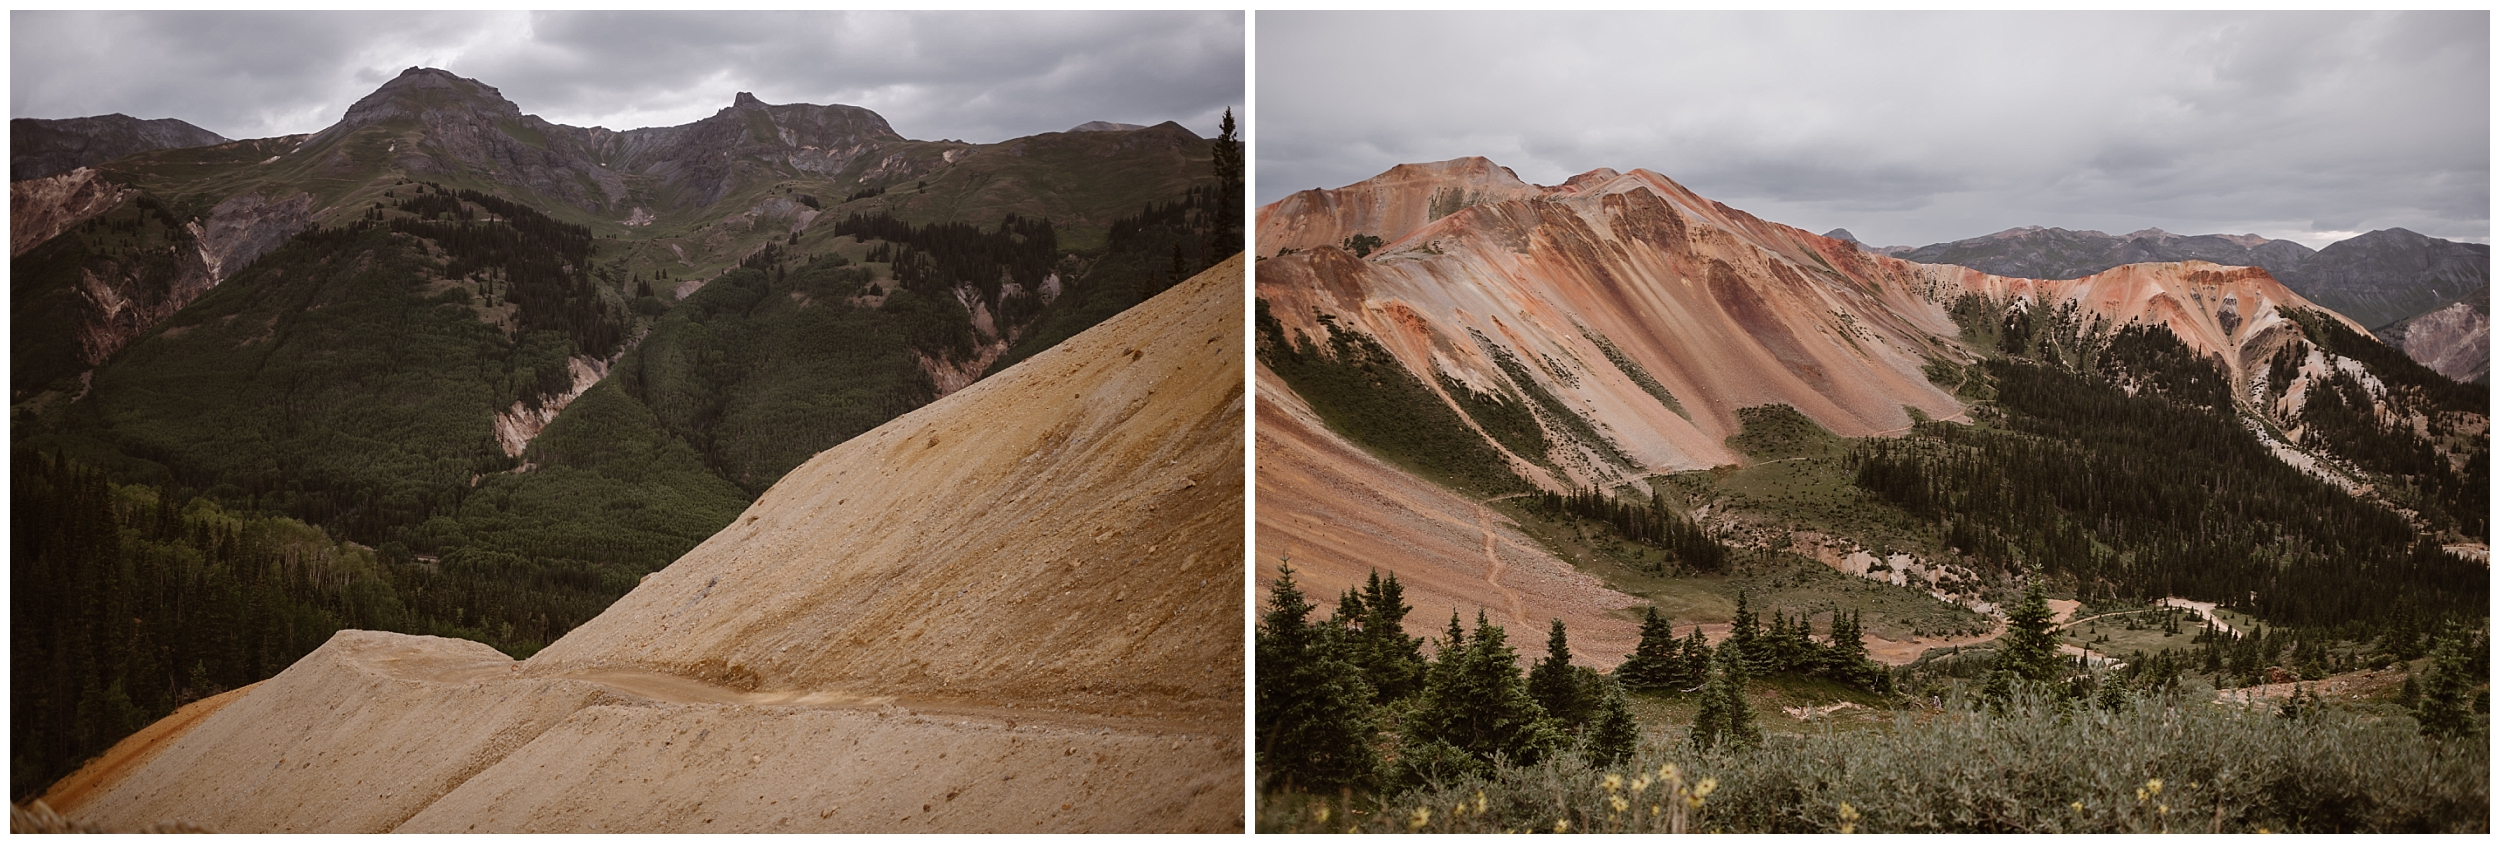 These side-by-side elopement pictures captured by elopement photographer Adventure Instead show off the gorgeous, diverse landscape of Ouray, Colorado, where Katie and Logan, chose to have their 4x4 wedding adventure. In the photo on the right, a sandy colored mountain stands juxtaposed against green and granite mountains in the background. On the right, a red mountain range looms in the distance among a green meadow.